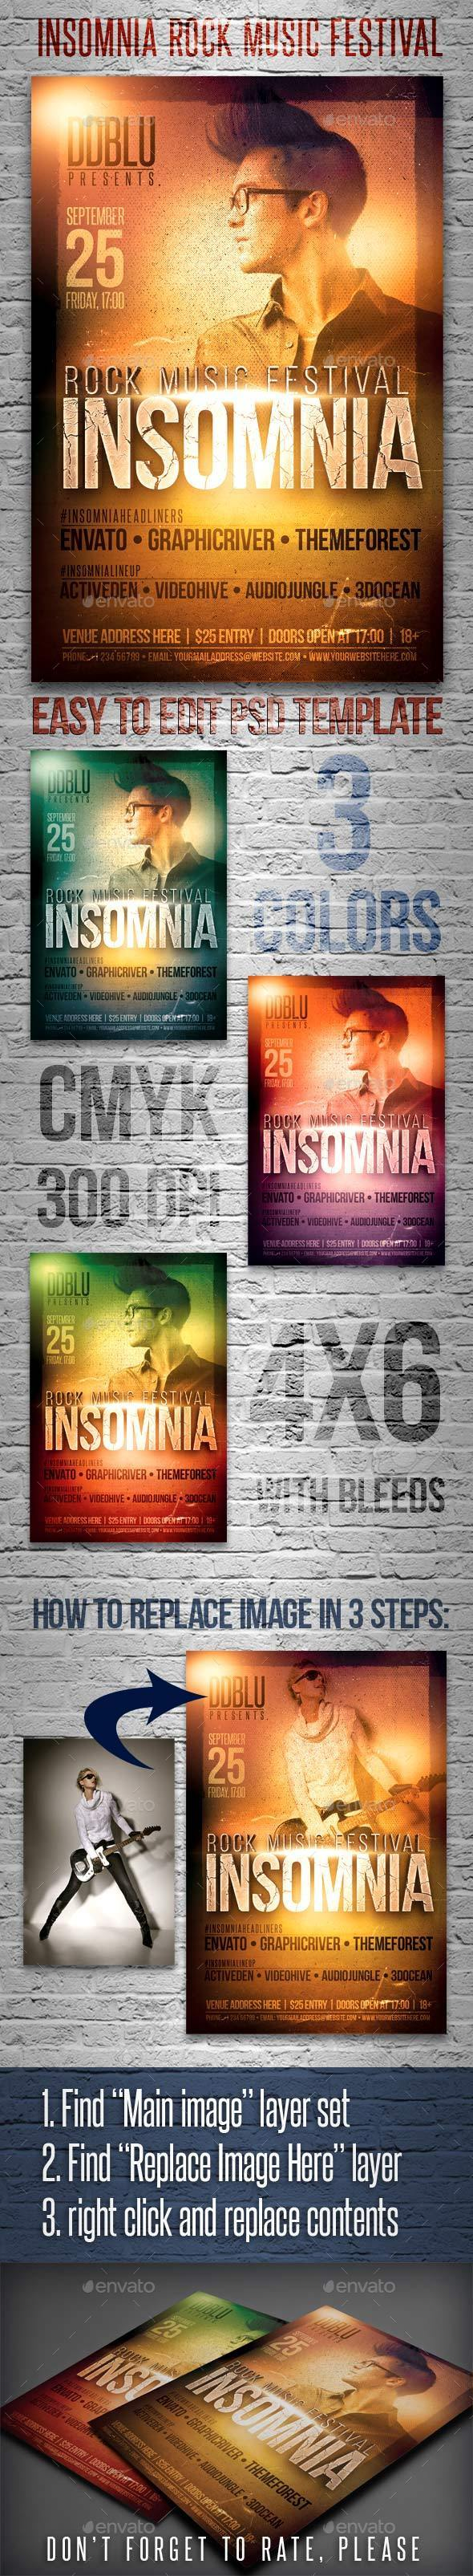 Insomnia Rock Music Festival Flyer - Events Flyers